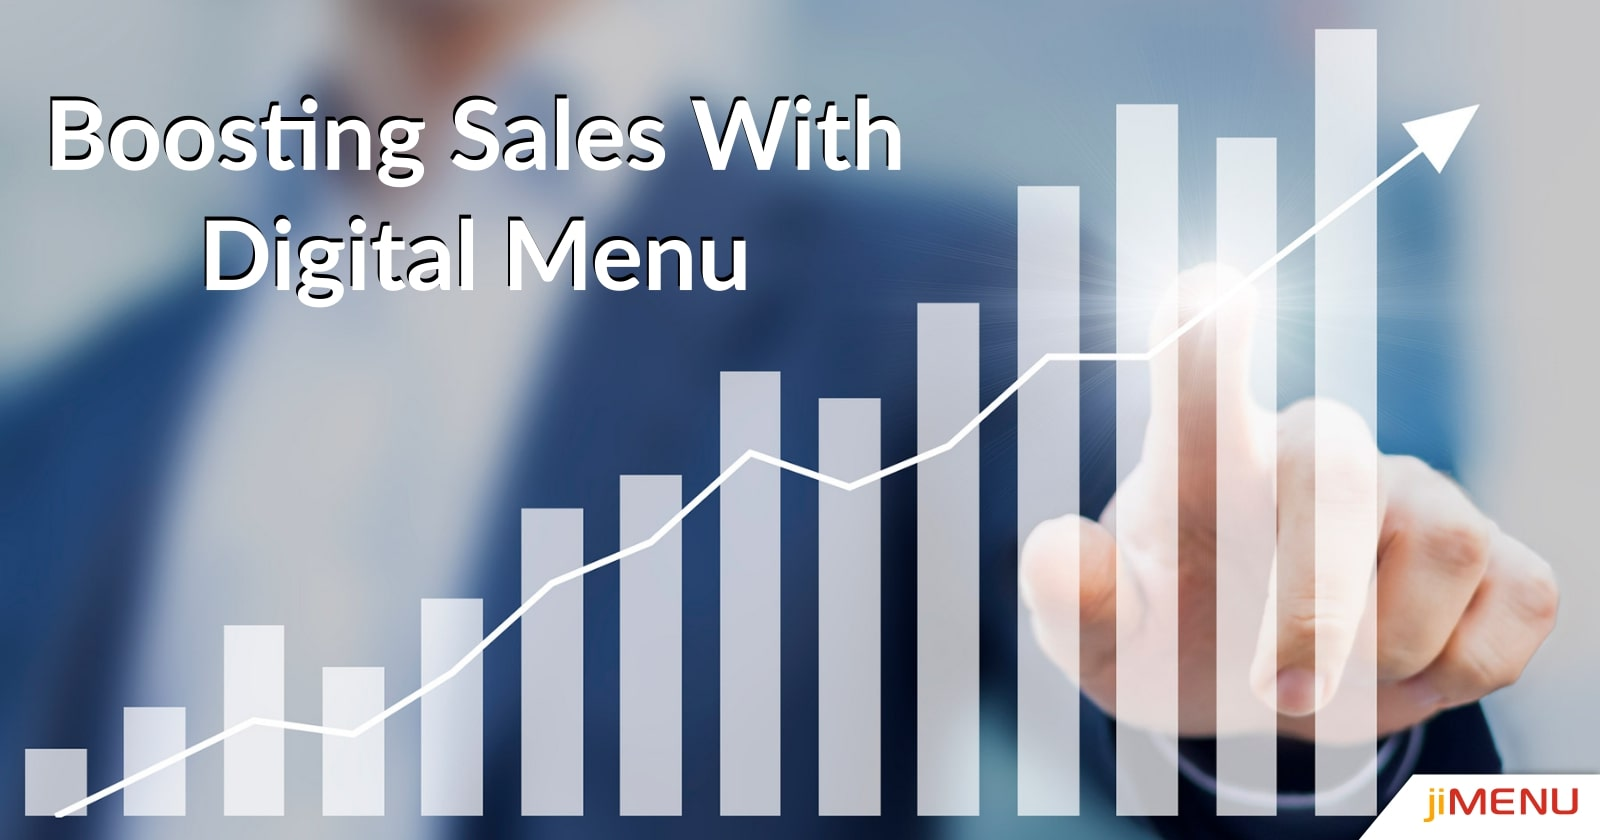 Boosting Restaurant Sales With Digital Menu